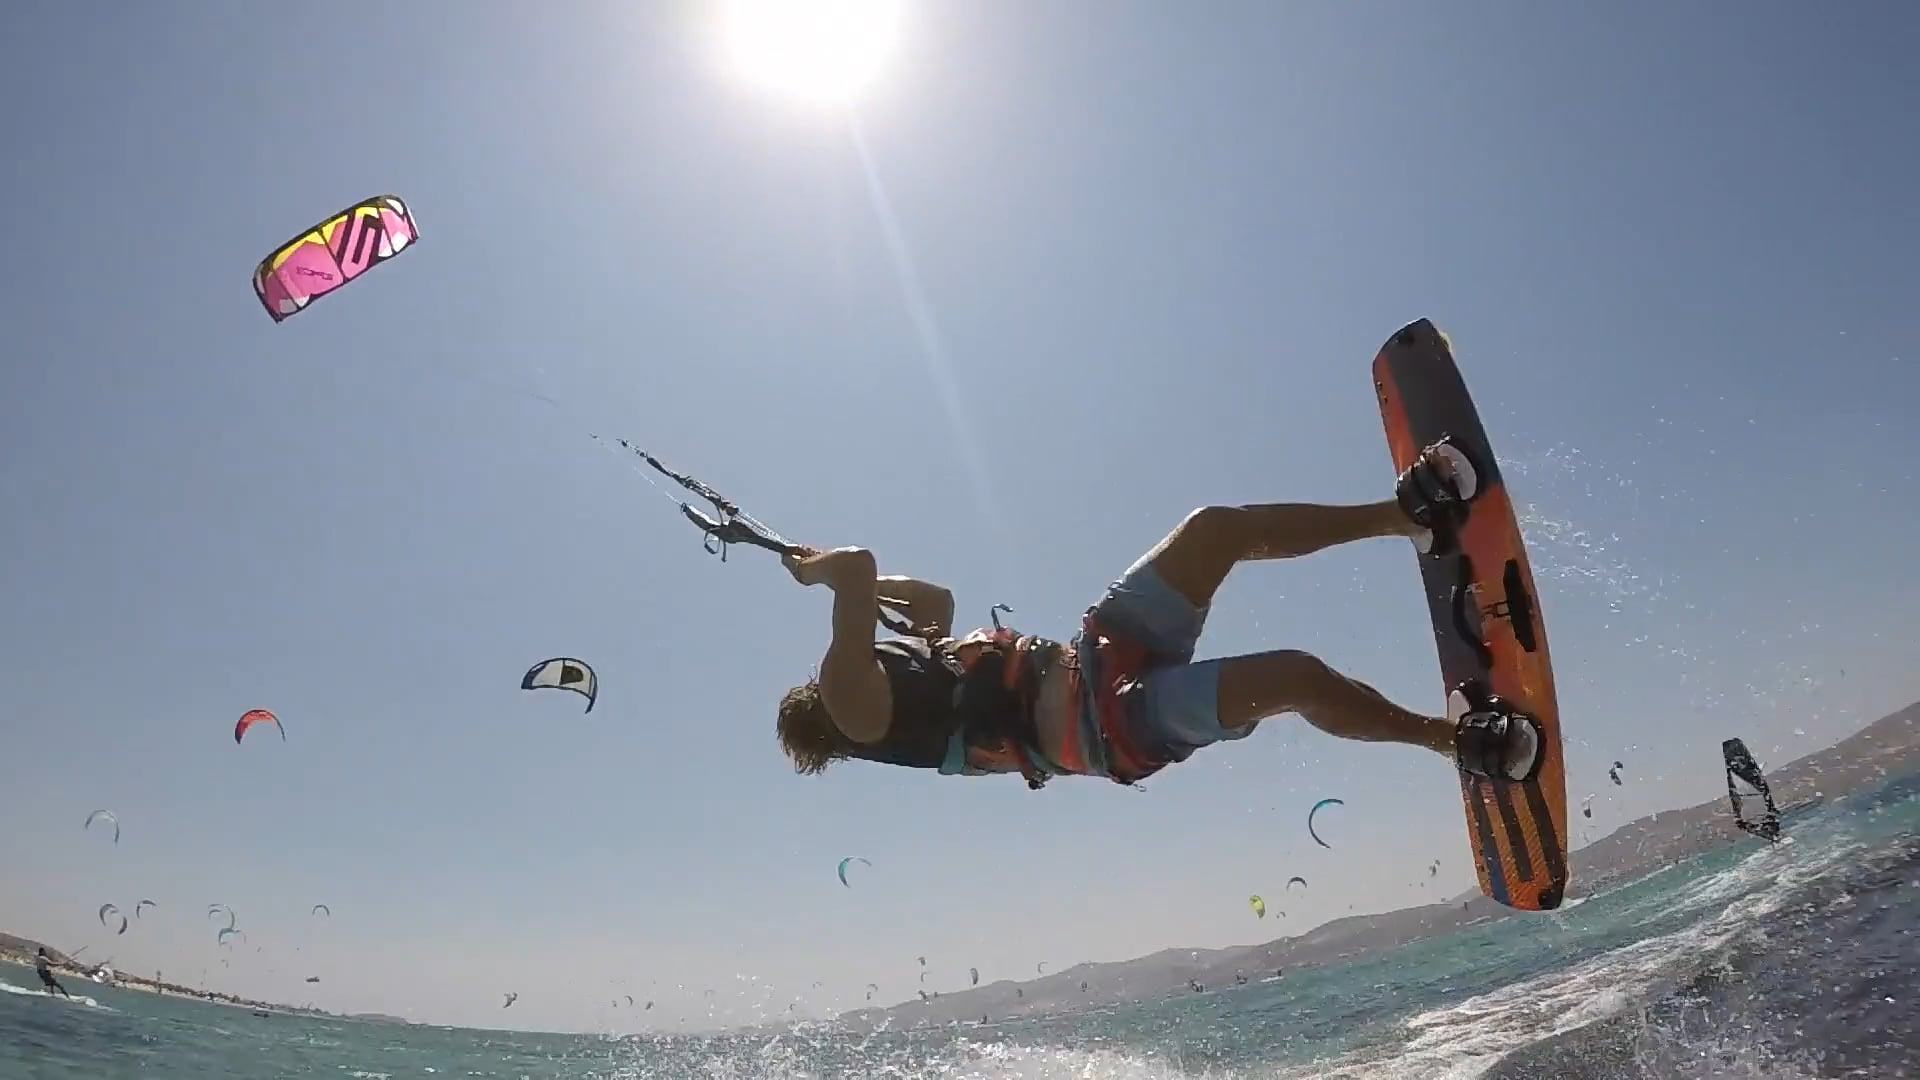 RED EYE Kitesurfing - with Epic Kites Kiteboarding